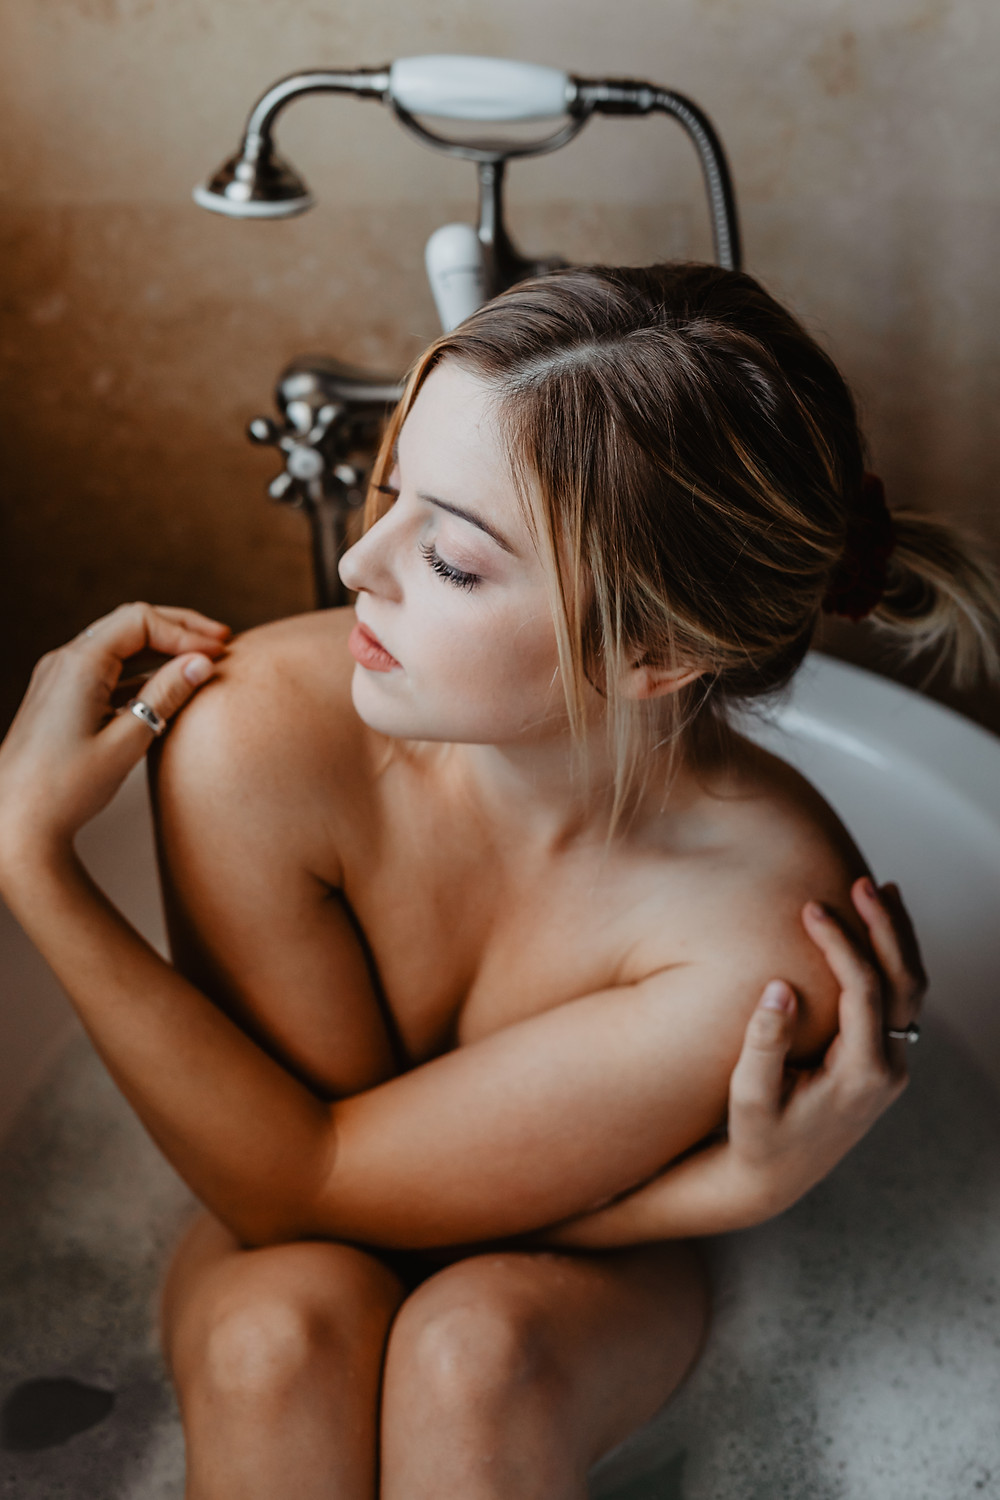 Nude woman posing in the bubble bath, taken by las vegas boudoir photographer haway films